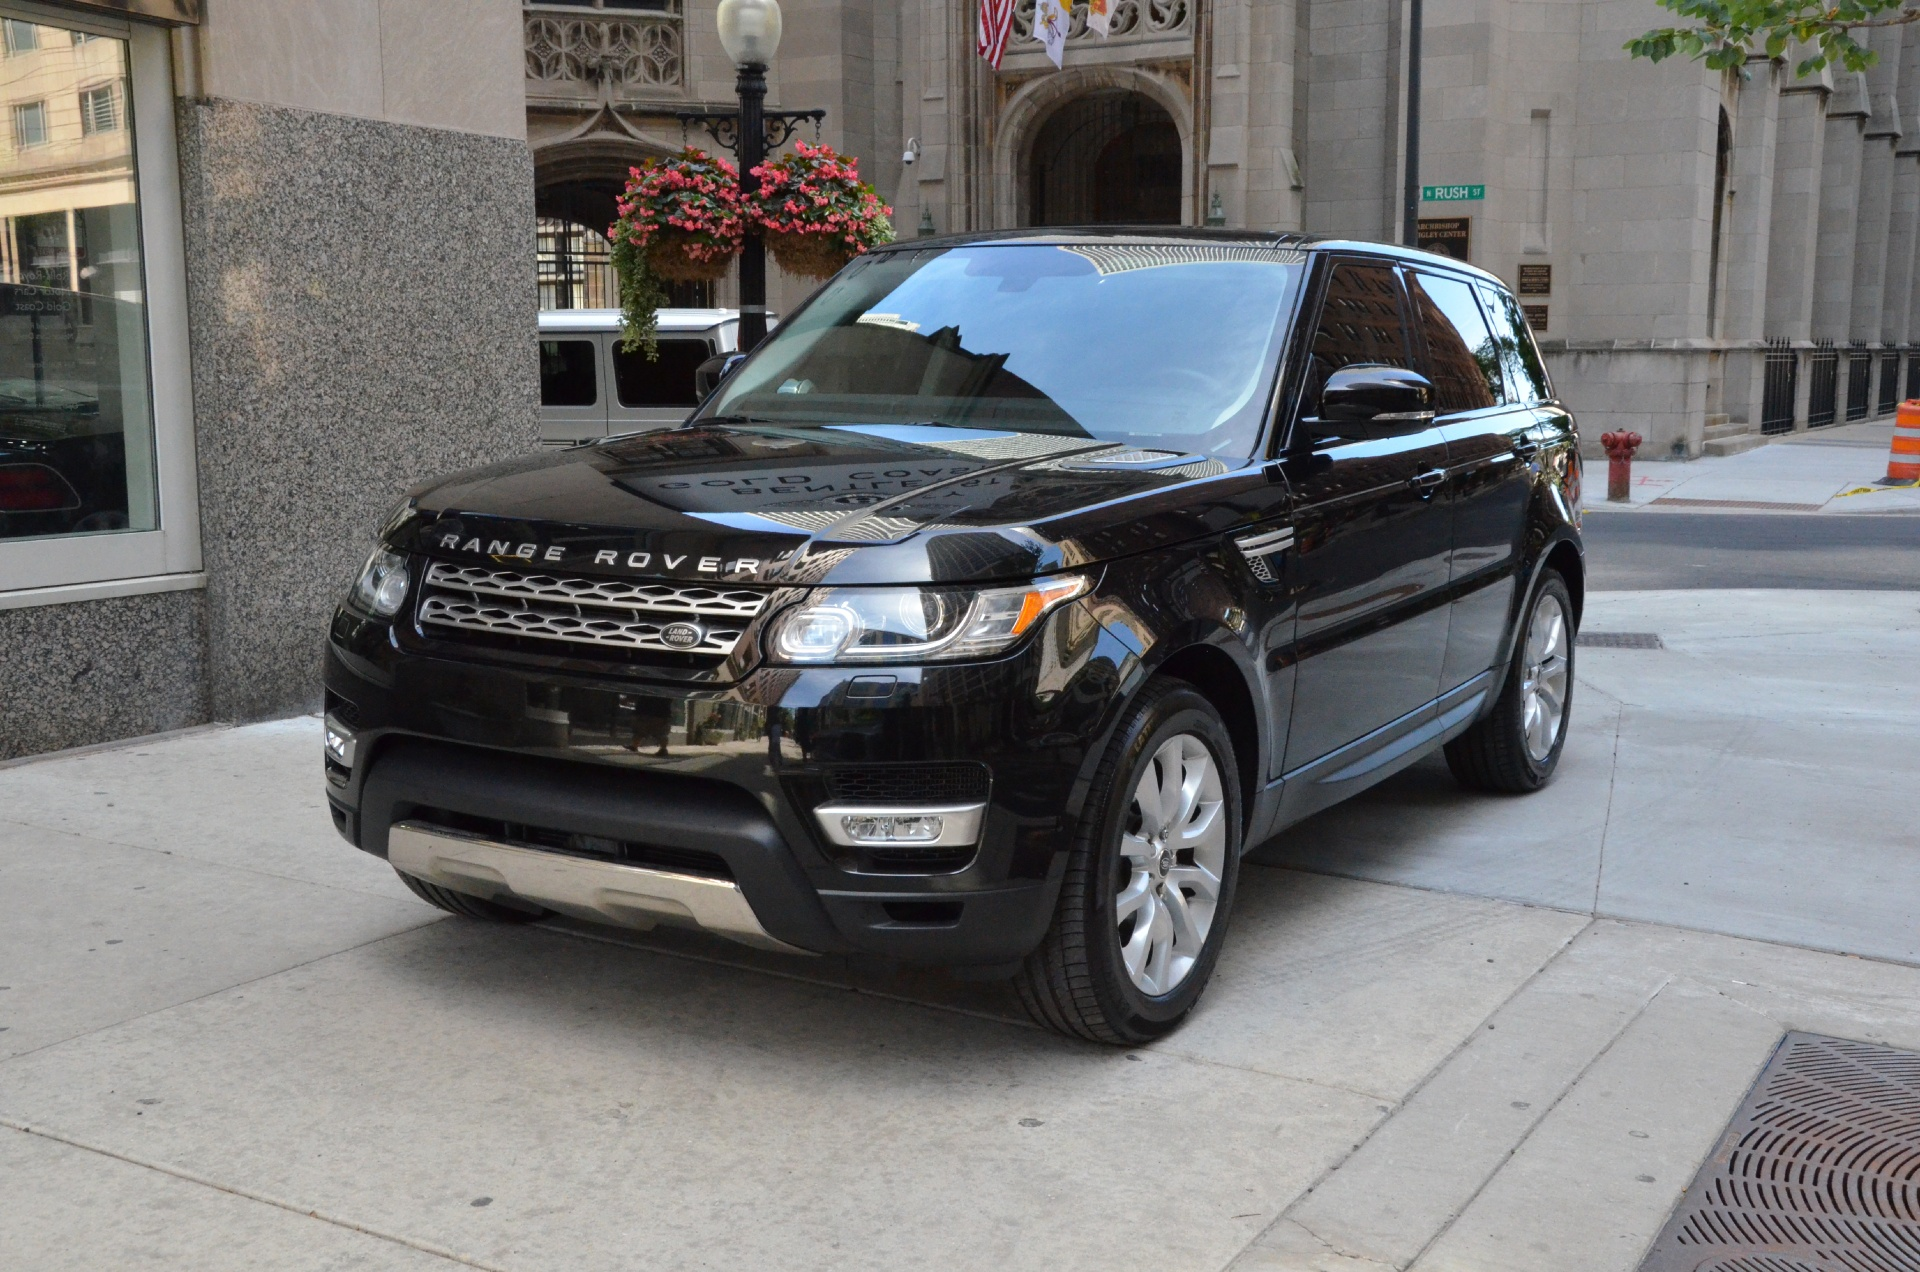 2014 land rover range rover sport se used bentley used rolls royce used lamborghini used. Black Bedroom Furniture Sets. Home Design Ideas